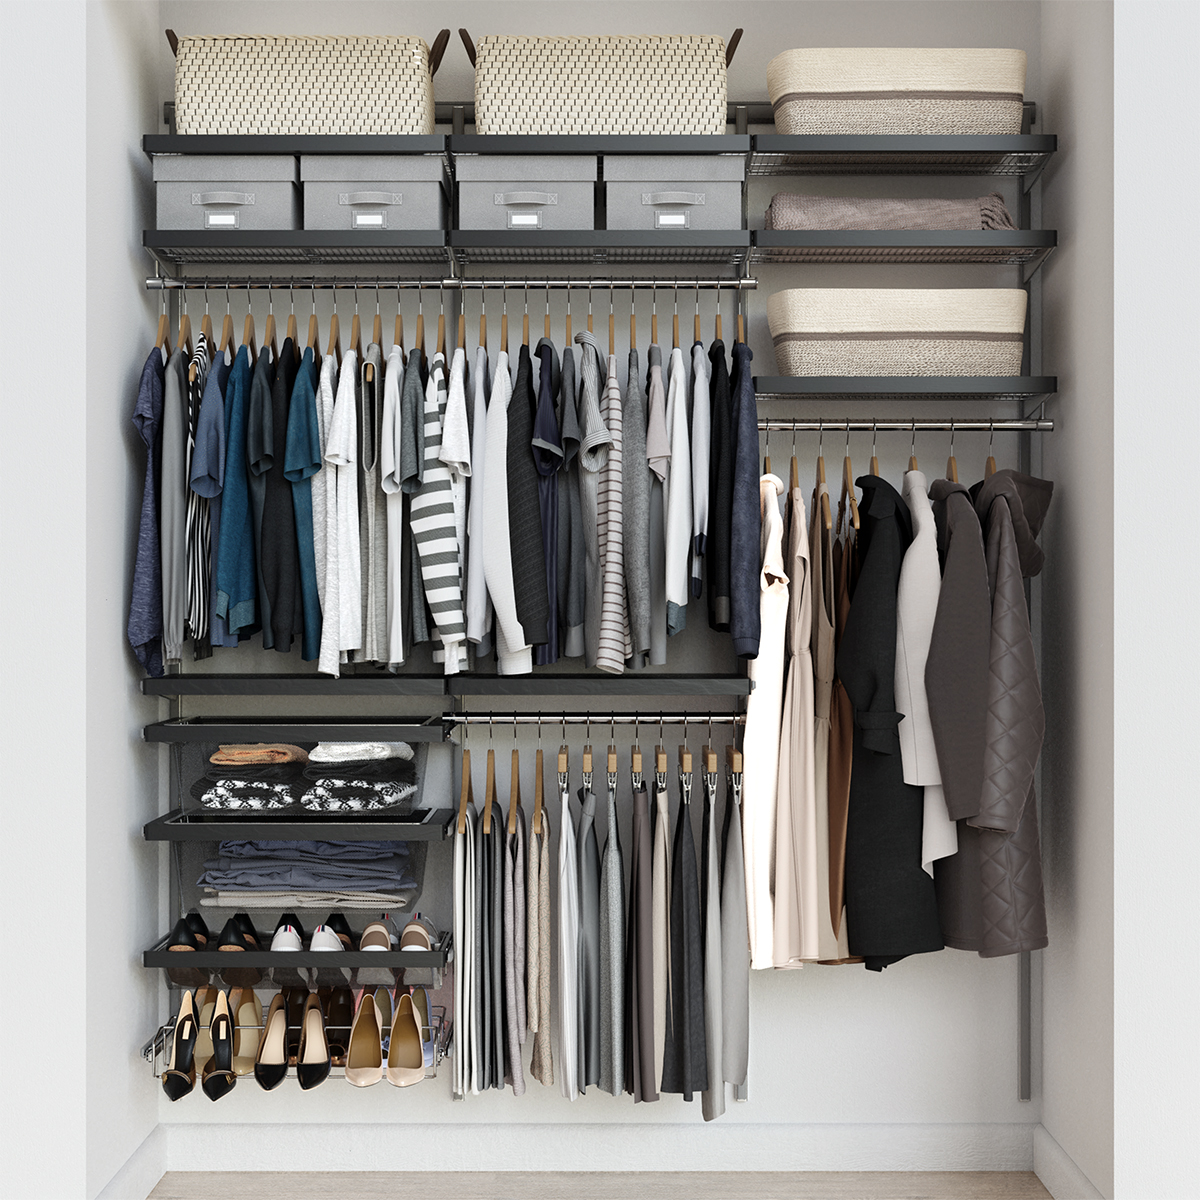 Elfa Decor 6' Platinum & Grey Reach-In Closet